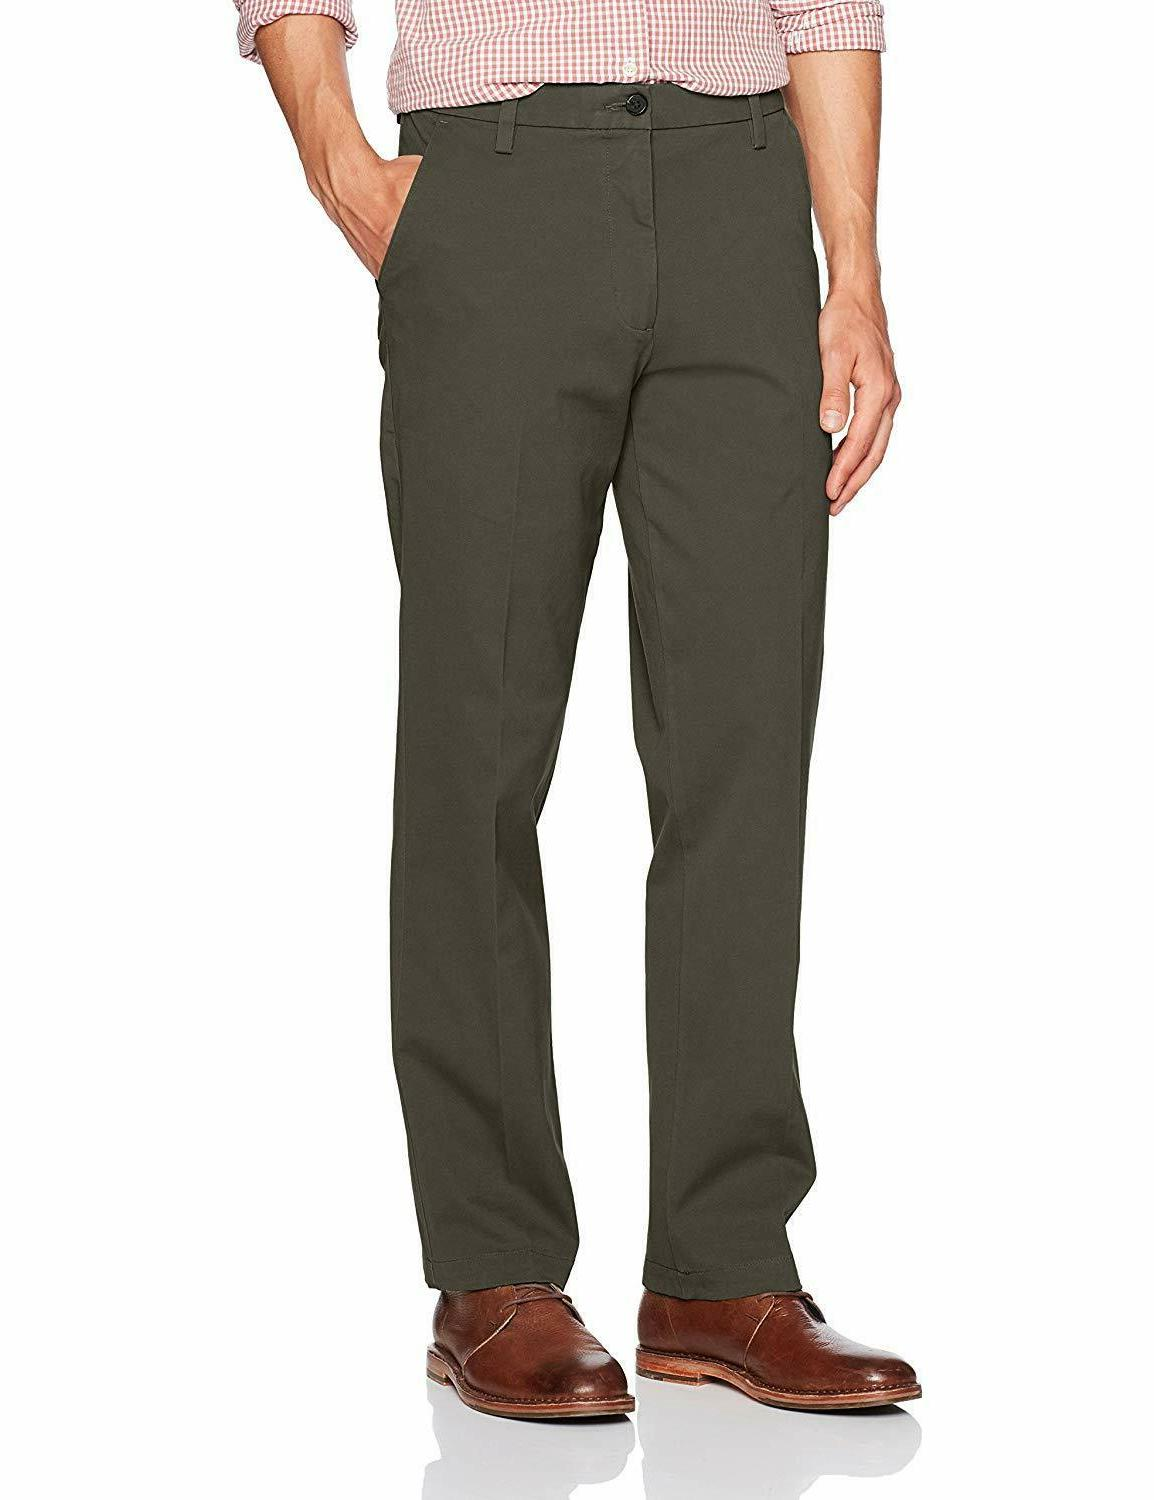 Dockers Men's Workday Khaki with Smart 360 Flex